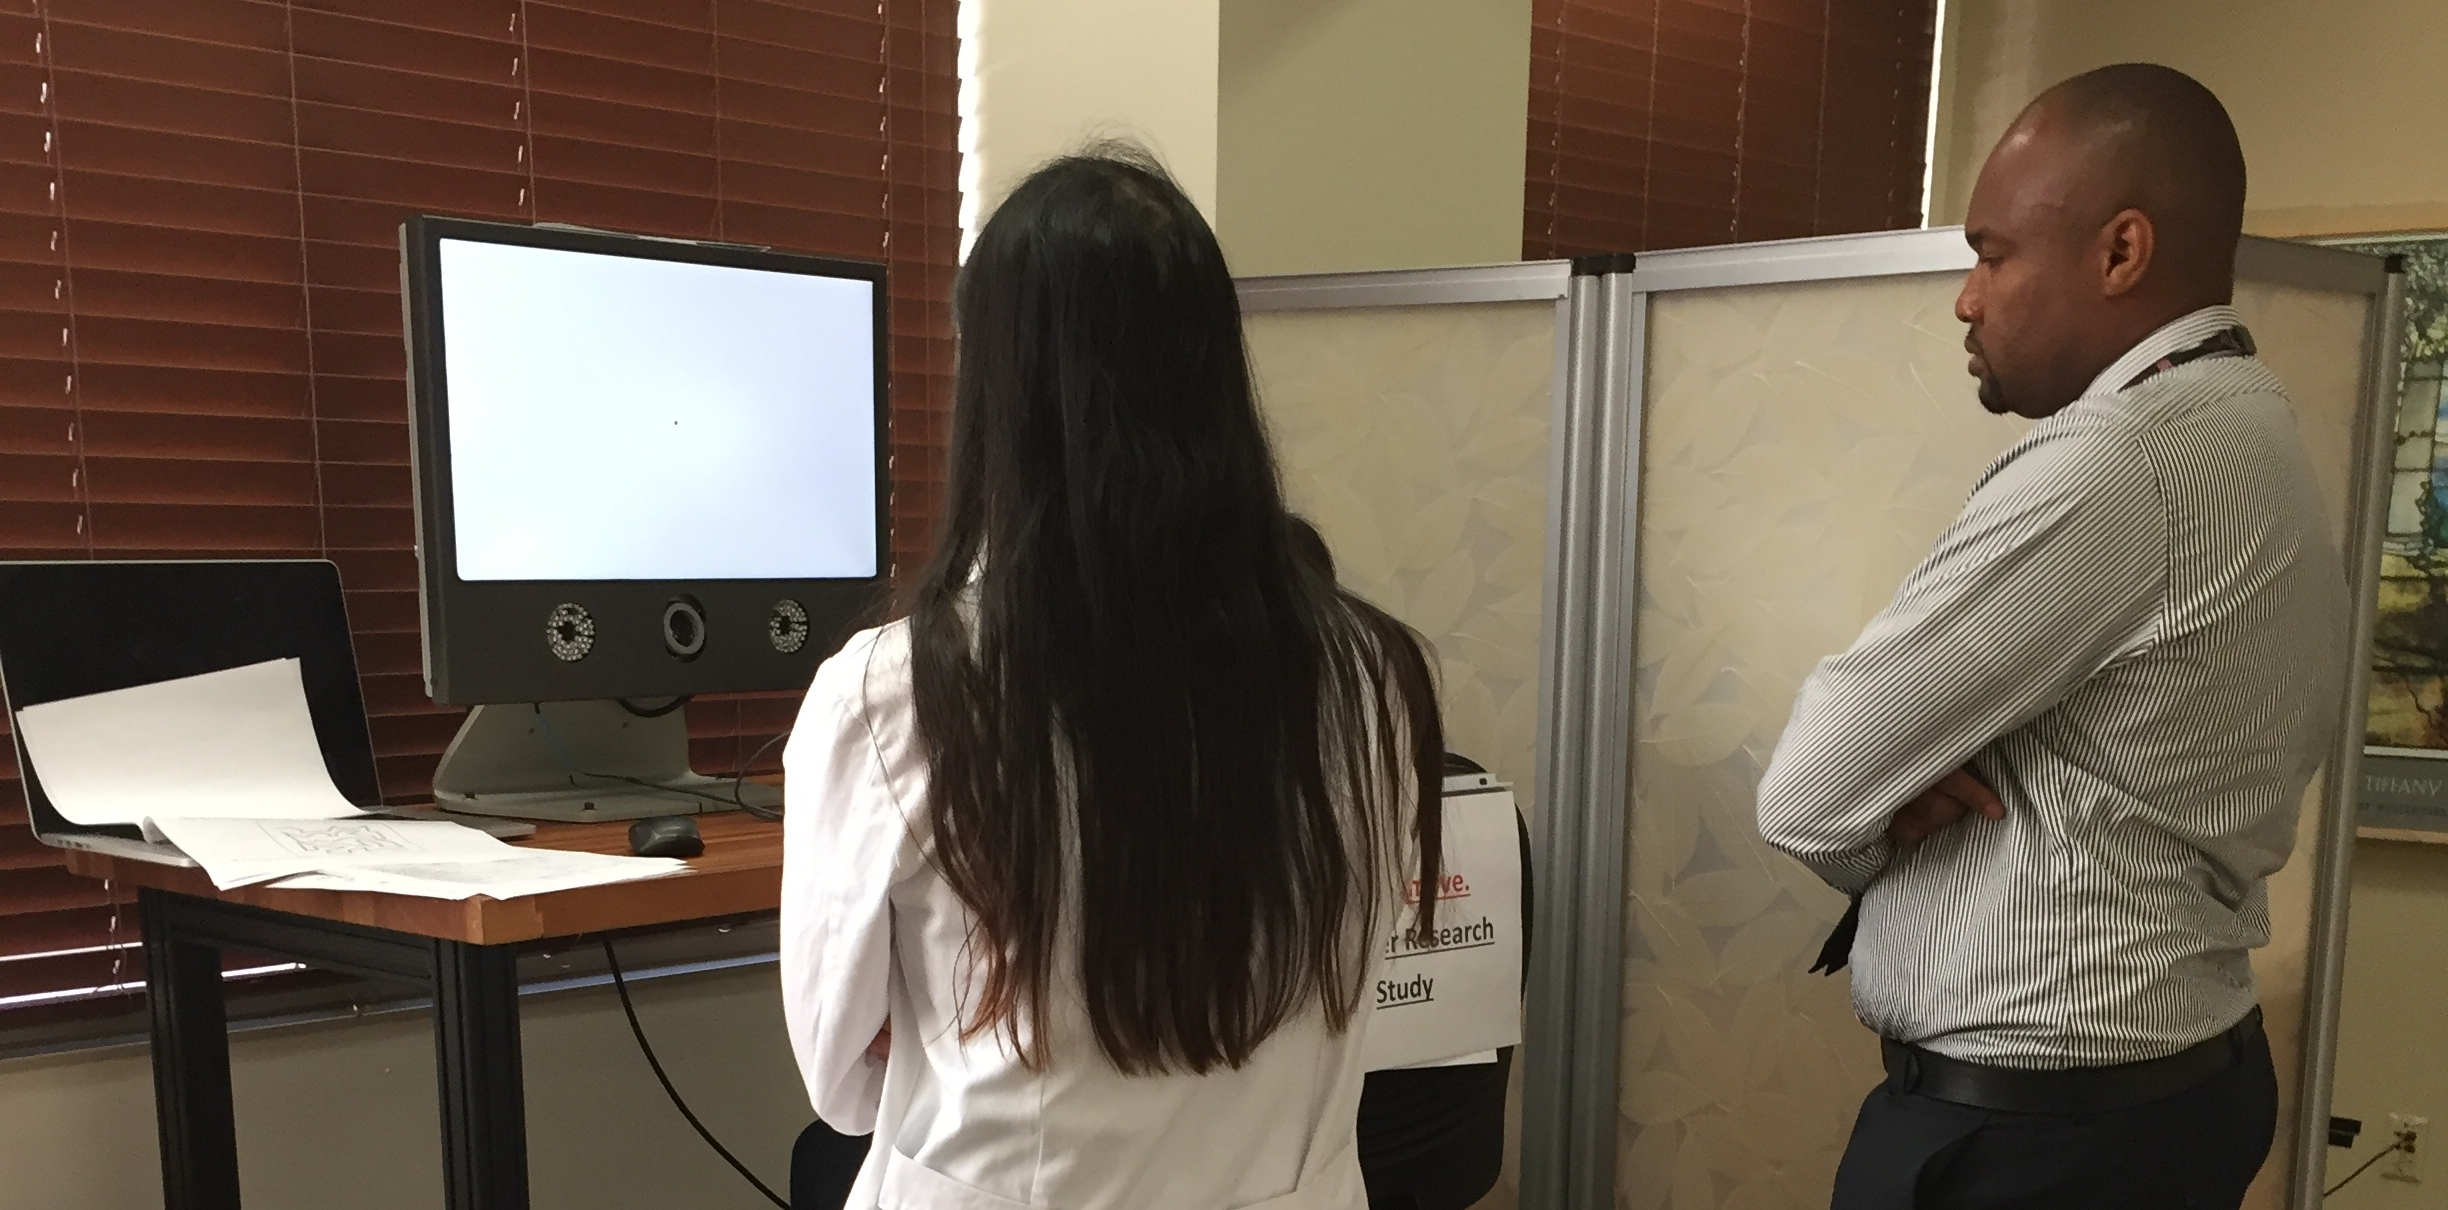 A new collaboration with Dr. Philip Okafor and Dr. Katherine Wong of Stanford Medicine has brought an exciting development to light:  signs of liver disease are measurable using eye movements .The project began with an organic discussion about an unmet need in hepatology to detect and measure signs of hepatic encephalopathy, brain pathology associated with liver disease.